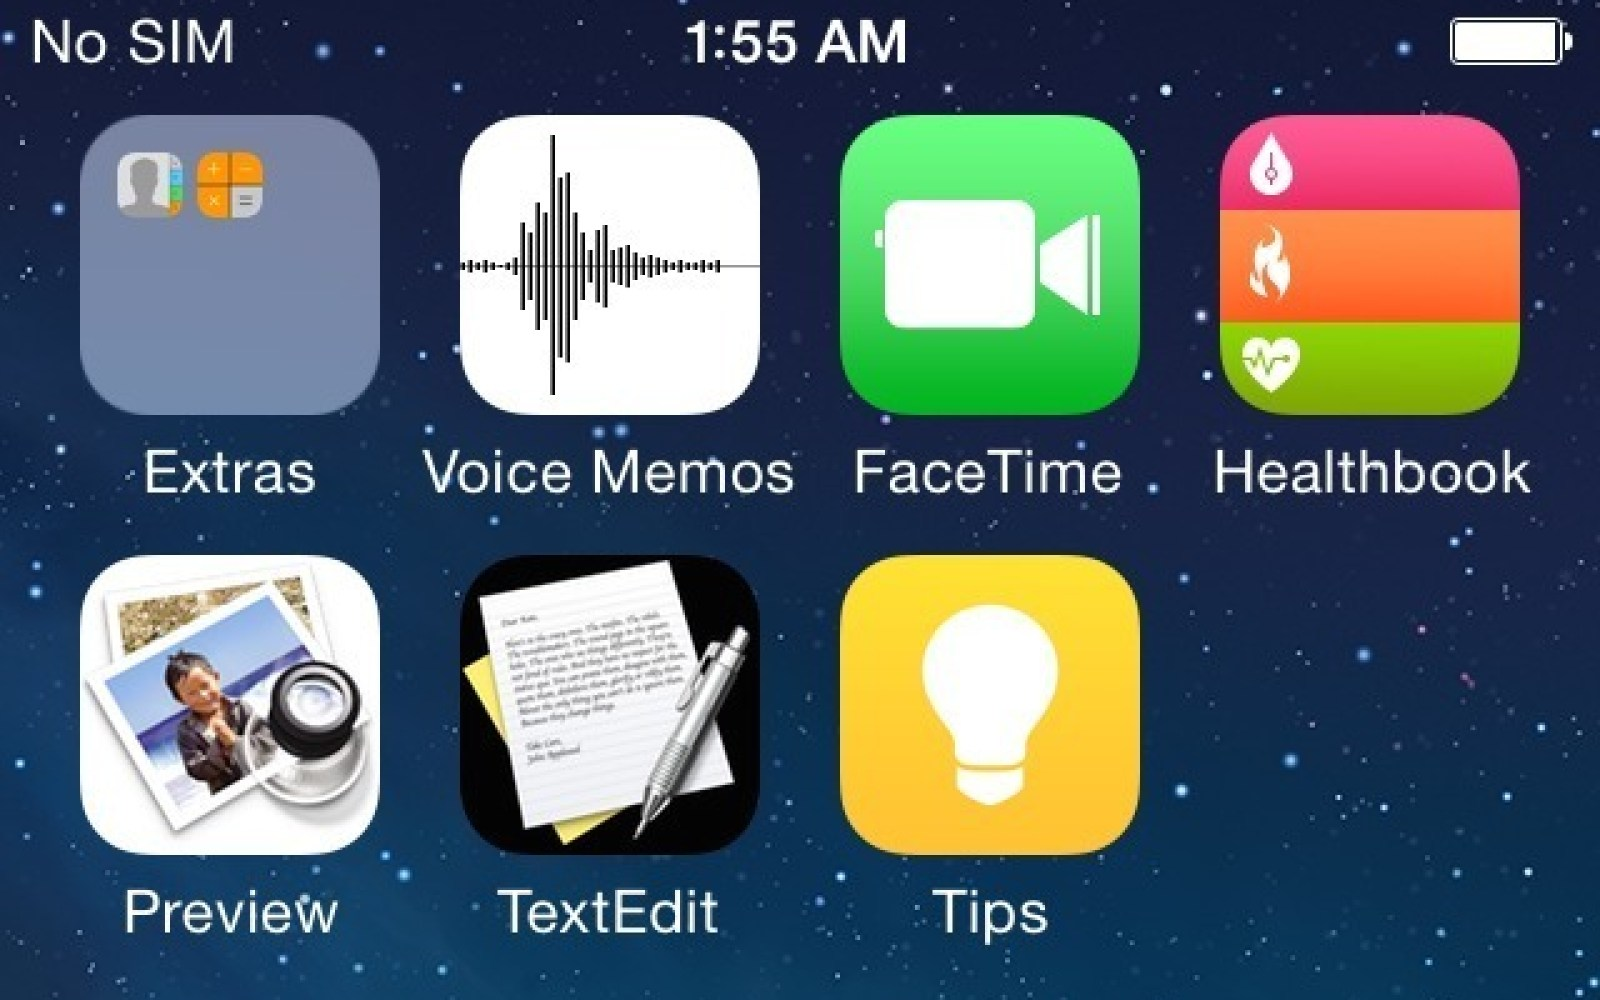 Screenshots of iOS 8: Healthbook, Preview, TextEdit icons leaked